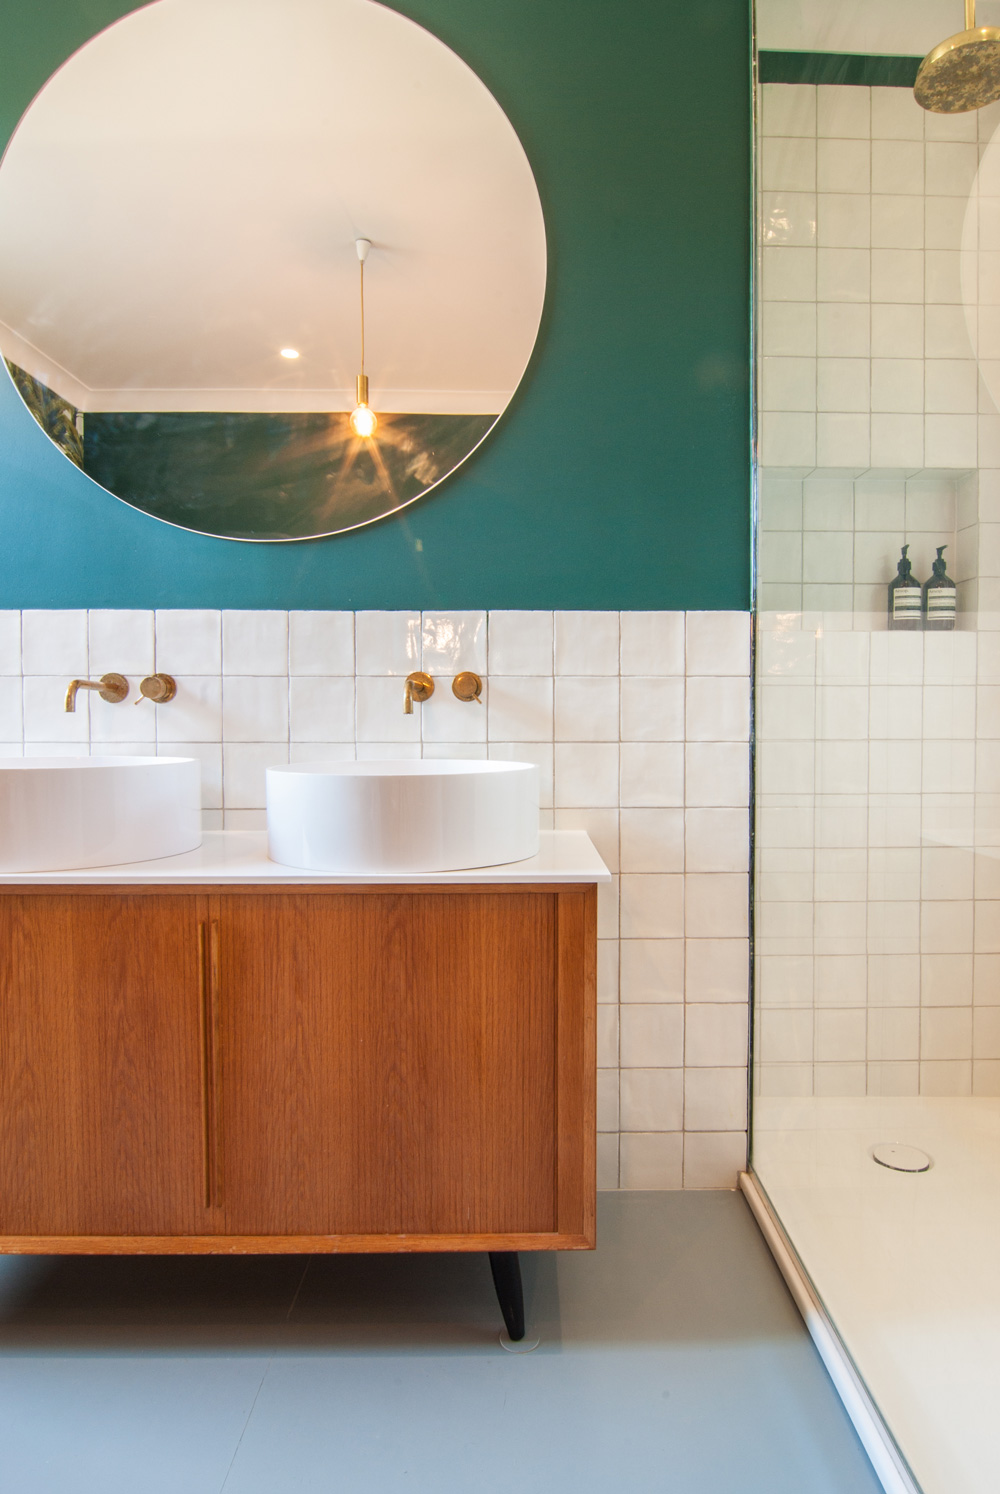 Leytonstone-Renovation-Teal-Bathroom-Bespoke-Vanity-Mirror-Brass-Refurbishment